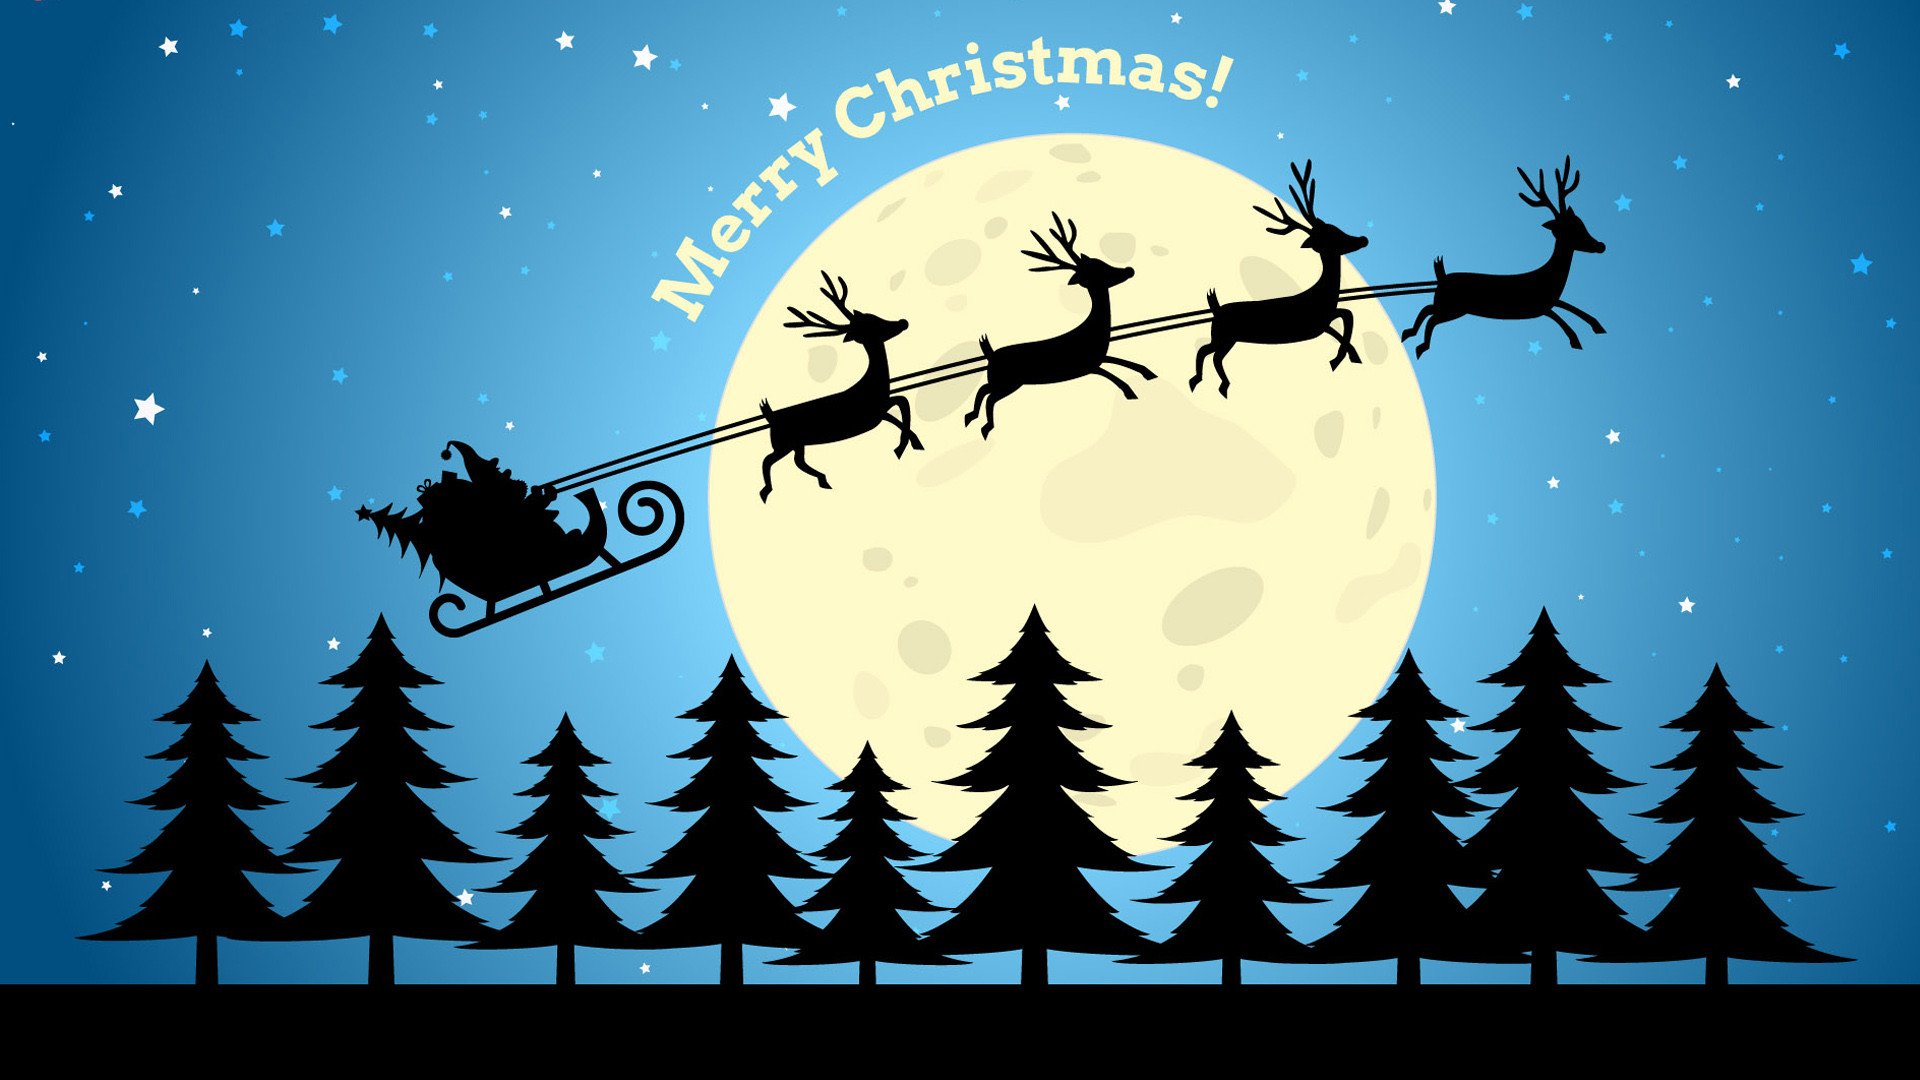 Merry Christmas 2012 Wallpapers | HD Wallpapers